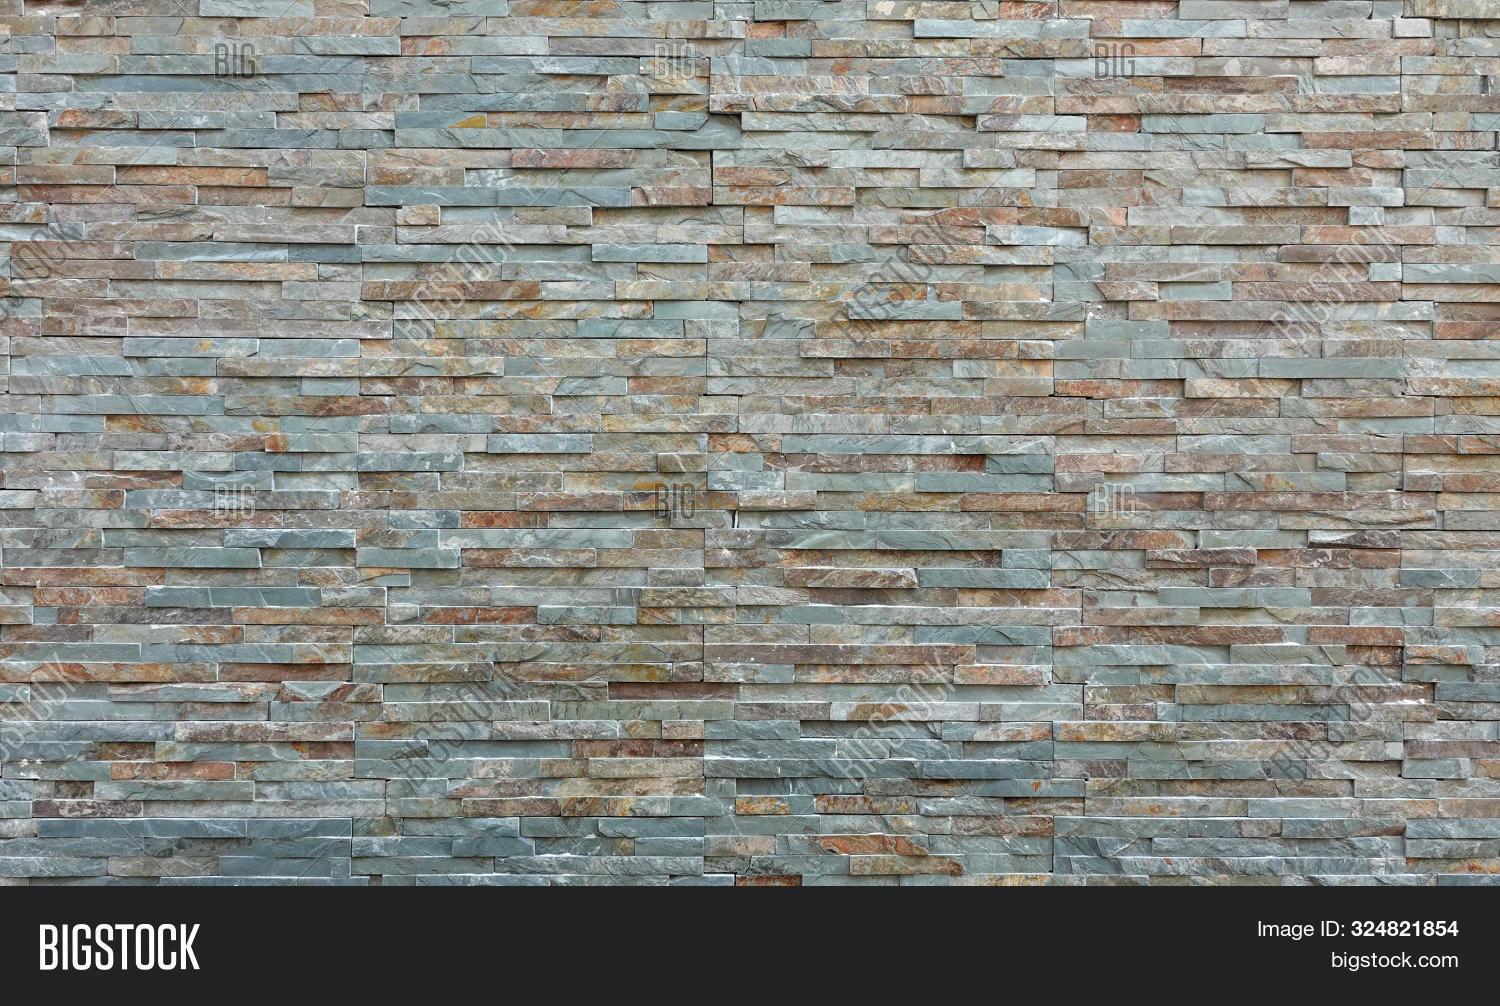 Granite tiles natural stone wall background